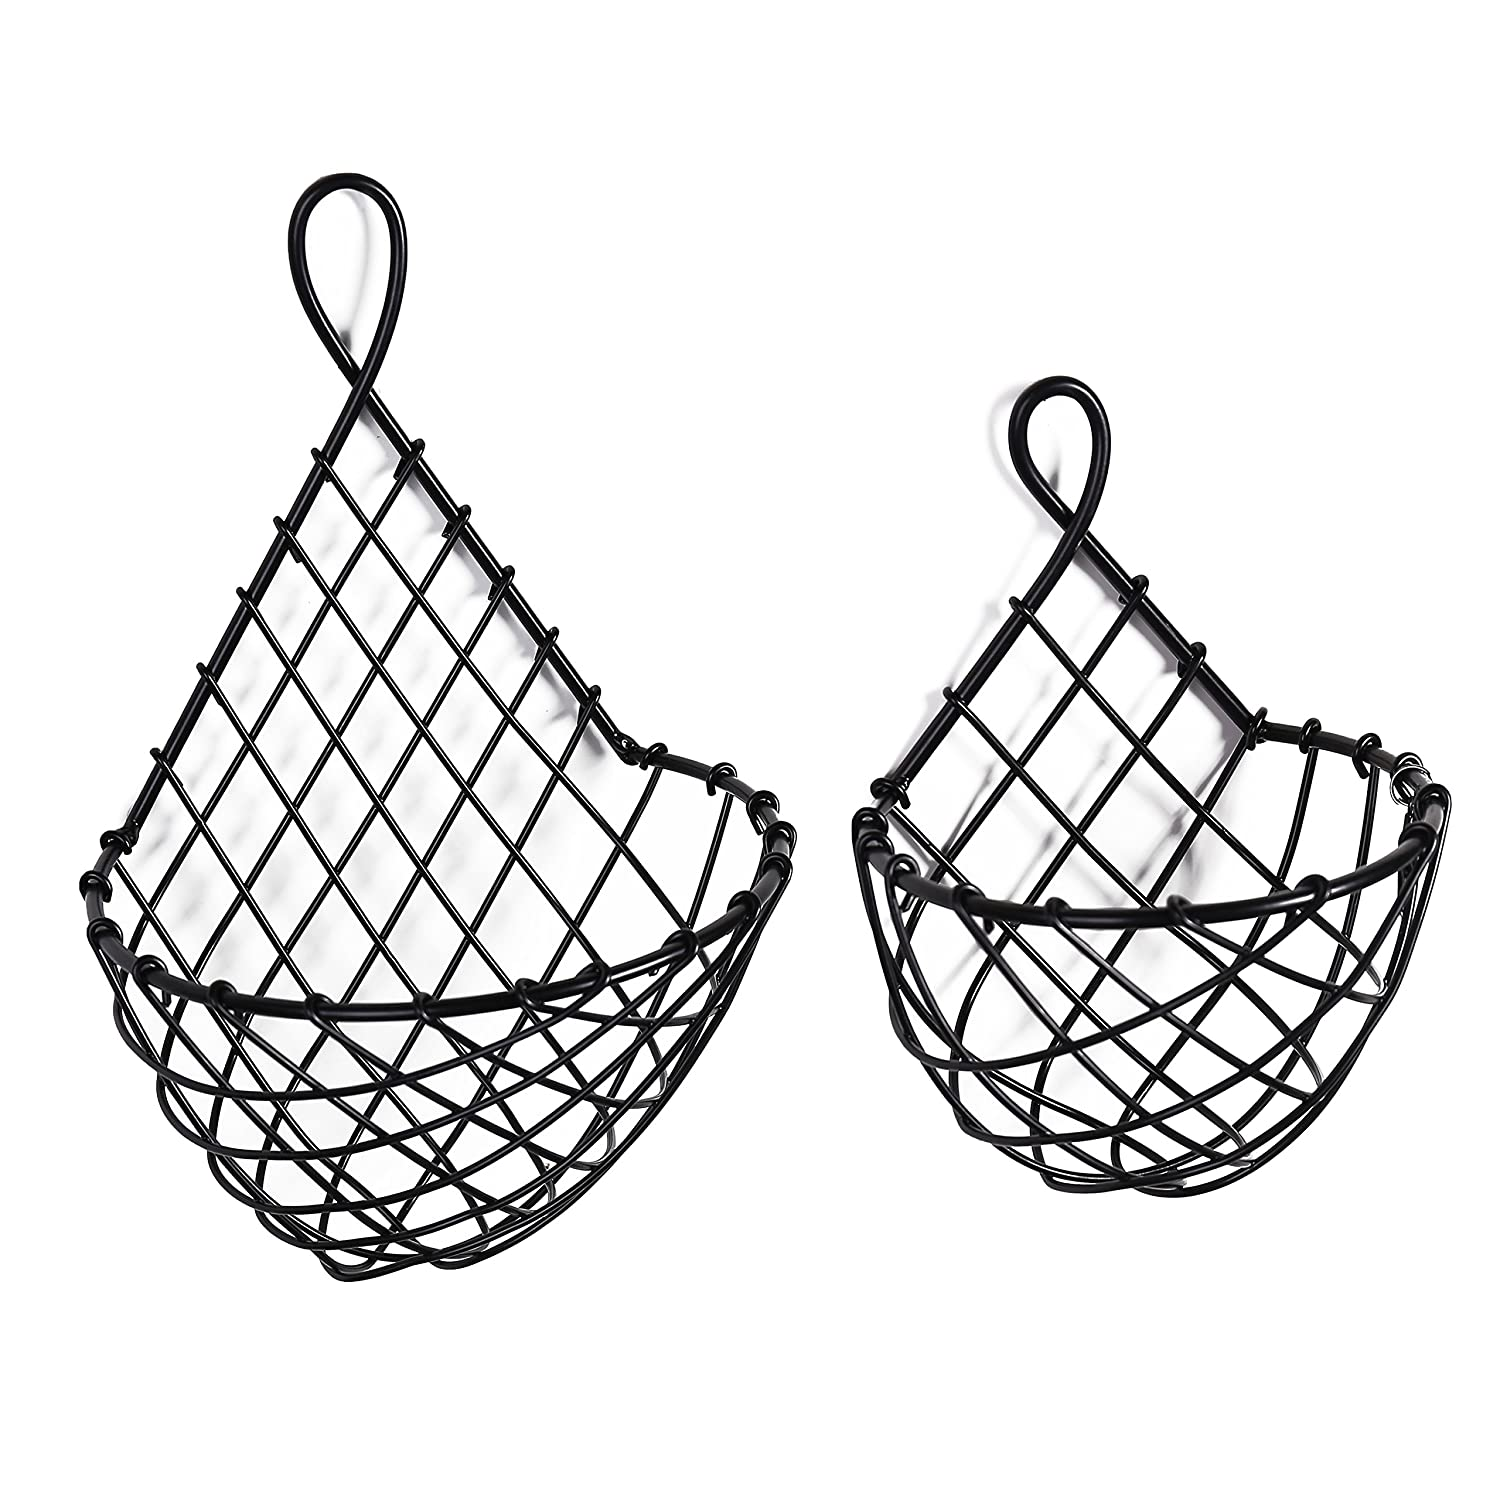 MyGift Wall-Mounted Black Metal Fruit Vegetable Baskets, Large & Small Hanging Produce Bins, Set of 2